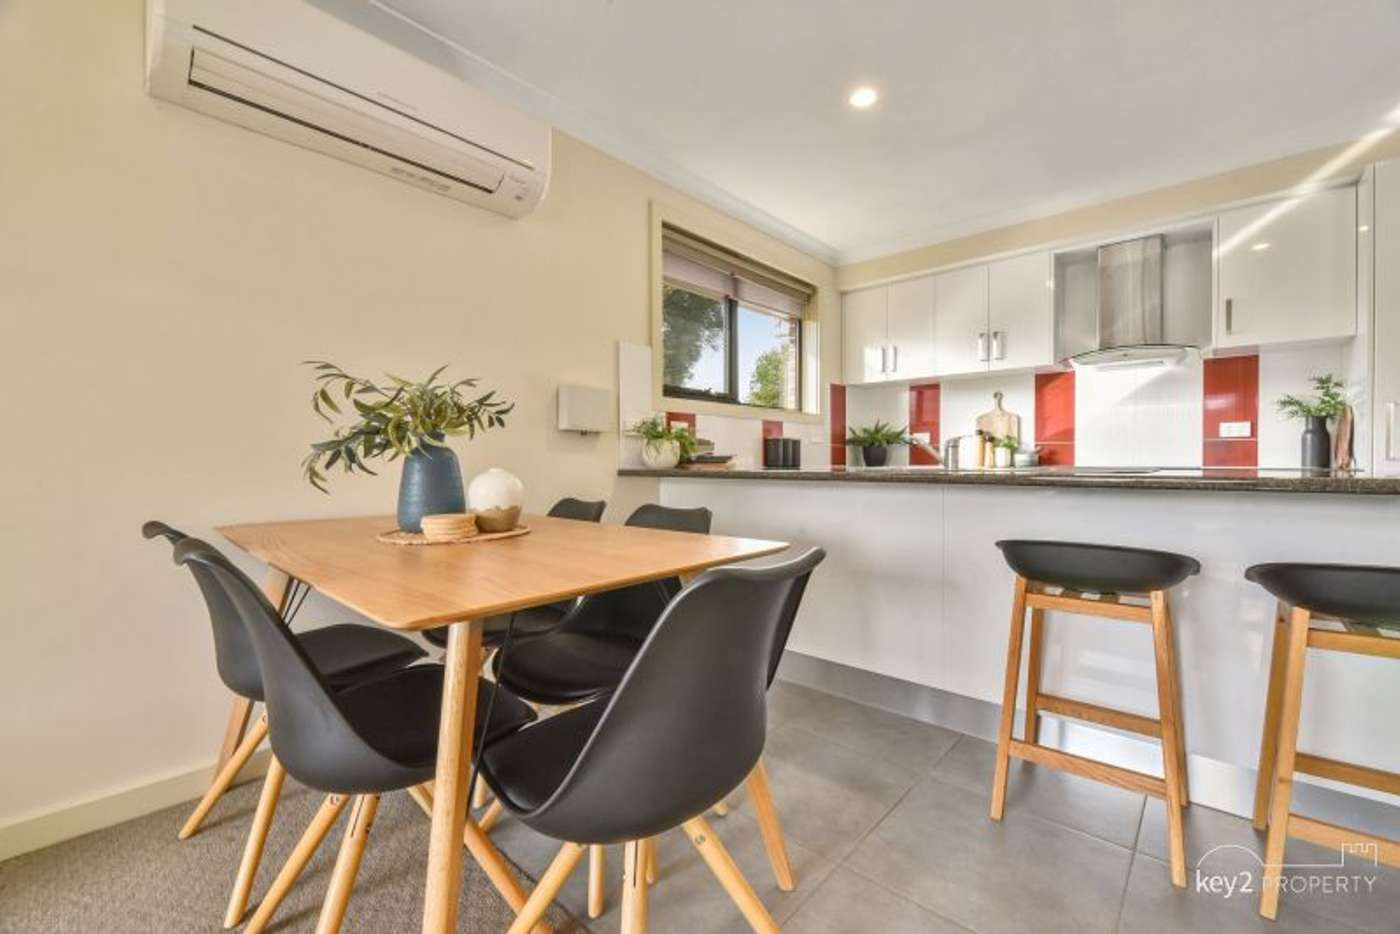 Fifth view of Homely unit listing, 2/16 Birdwood Street, Mowbray TAS 7248